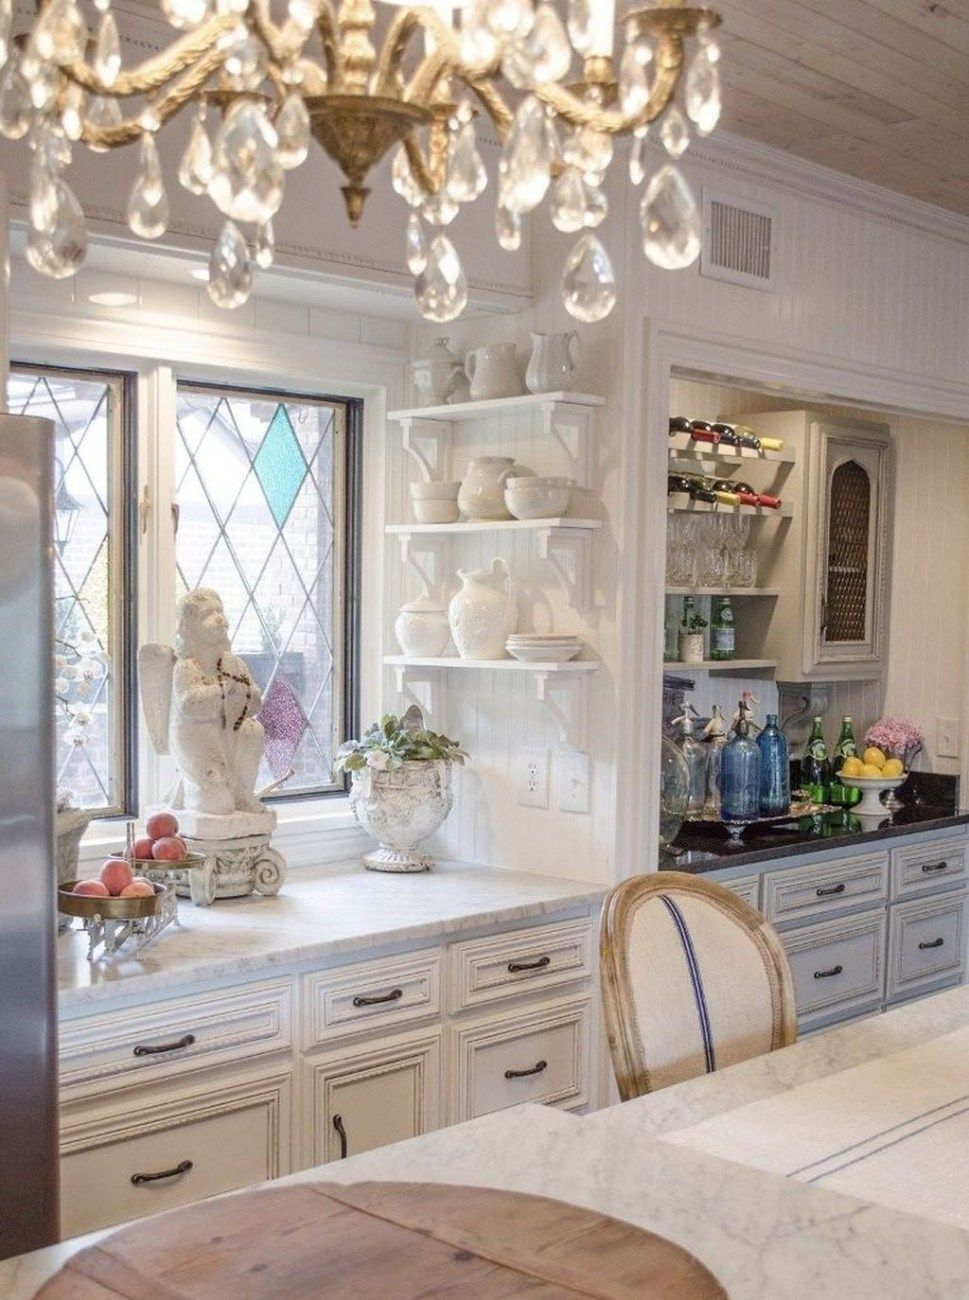 49 stunning french country style kitchen decor ideas french rh pinterest com